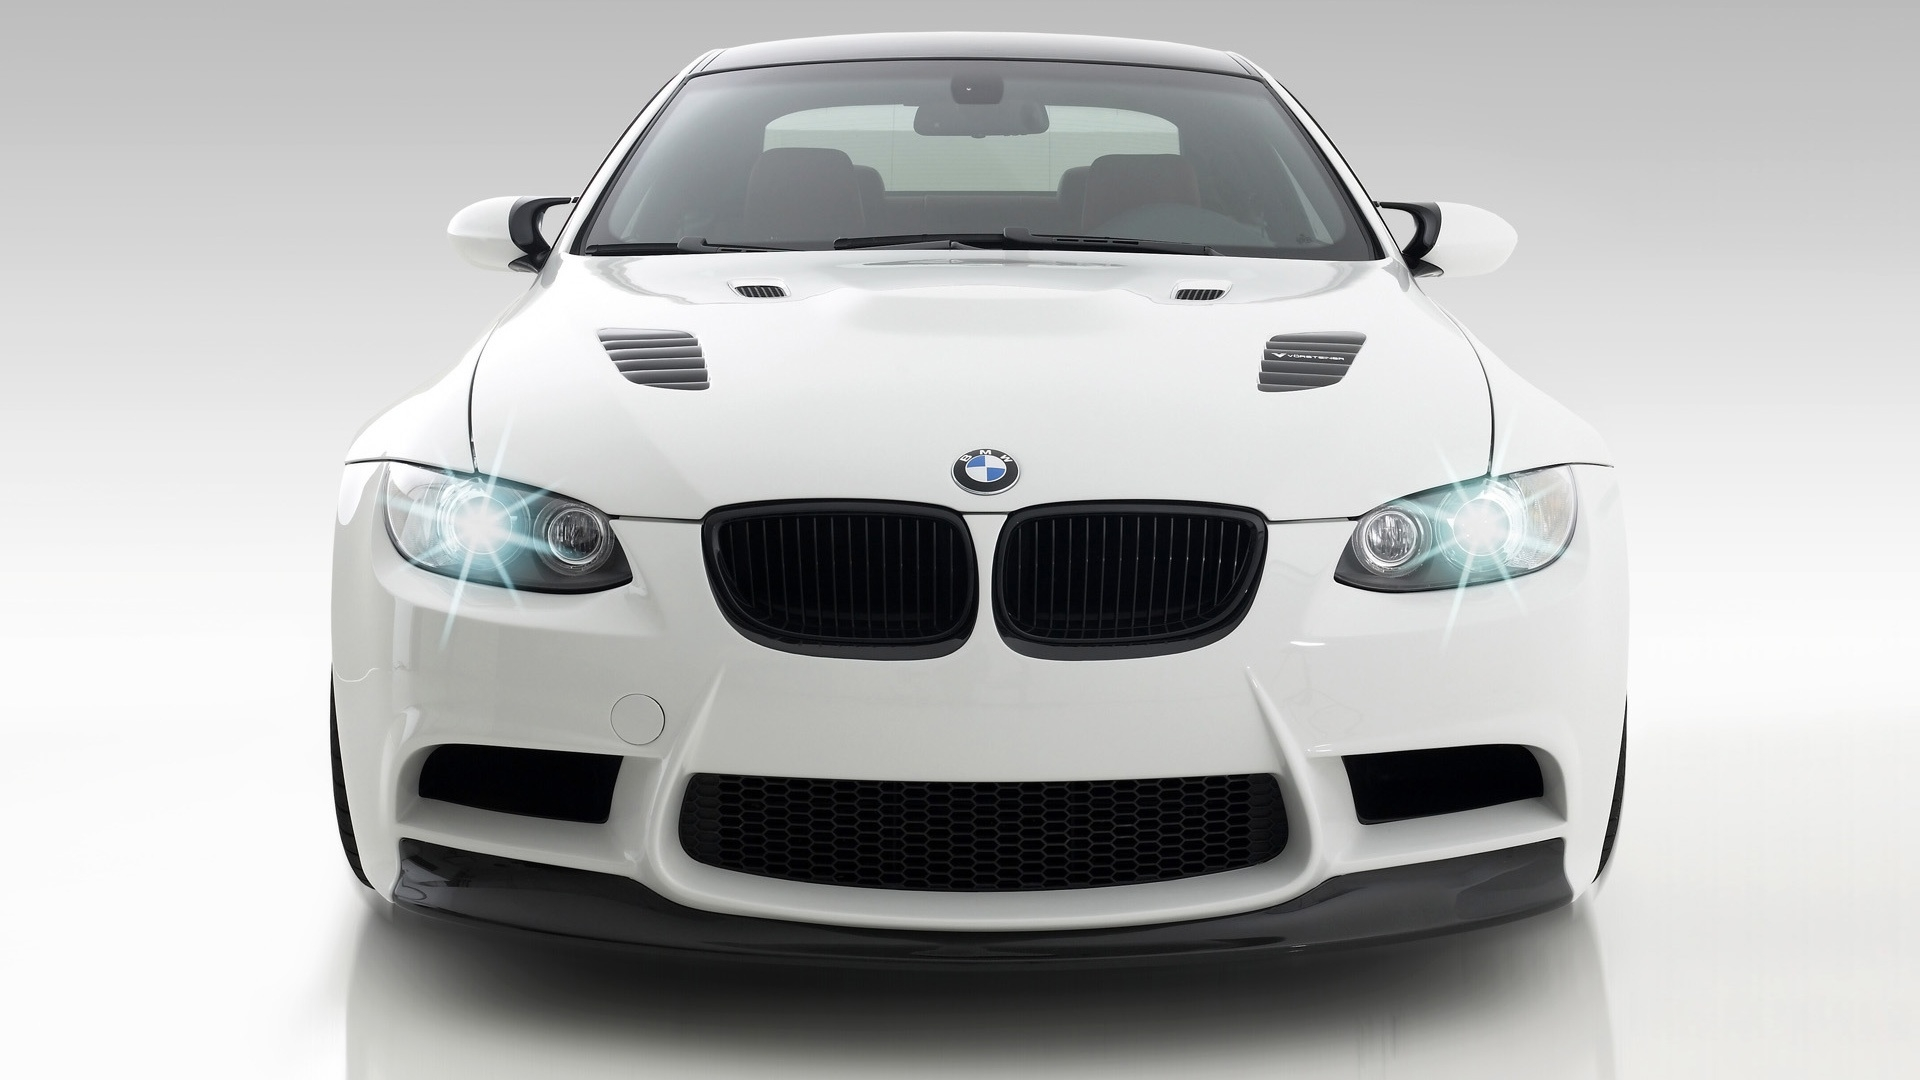 BMW M3 Hd Wallpaper 1080p